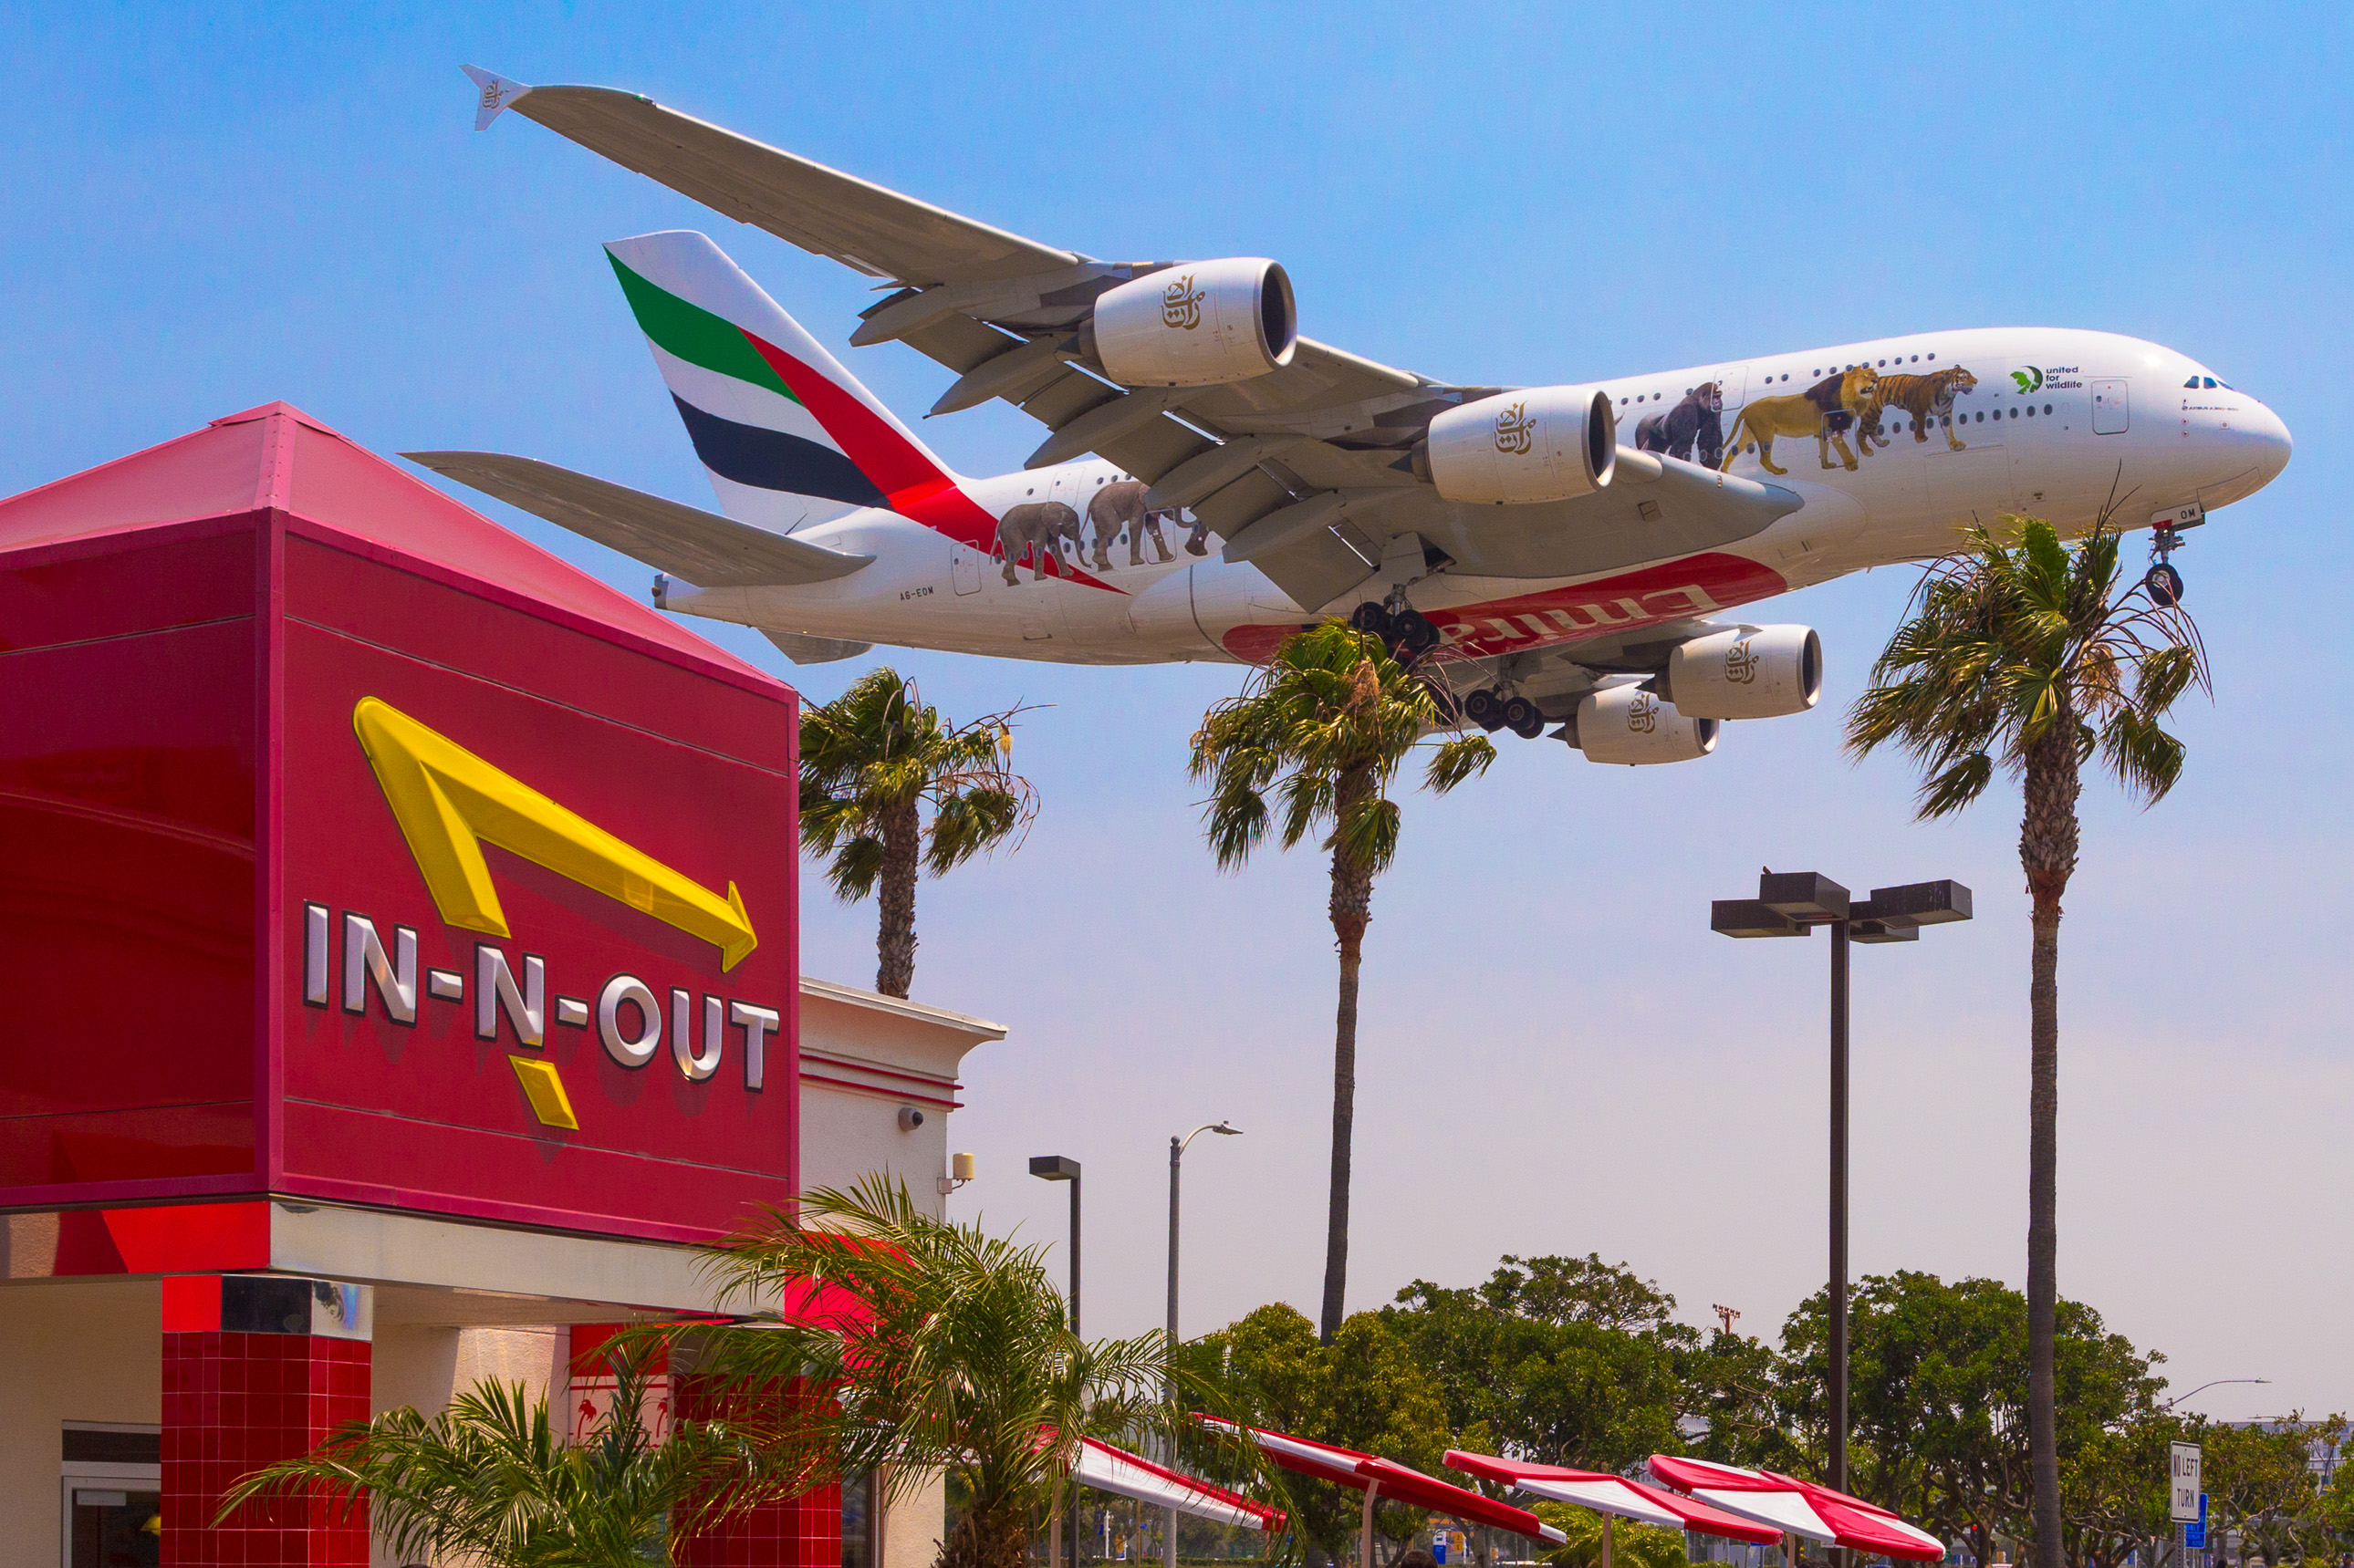 Plane Spotting at the LAX In-N-Out Burger